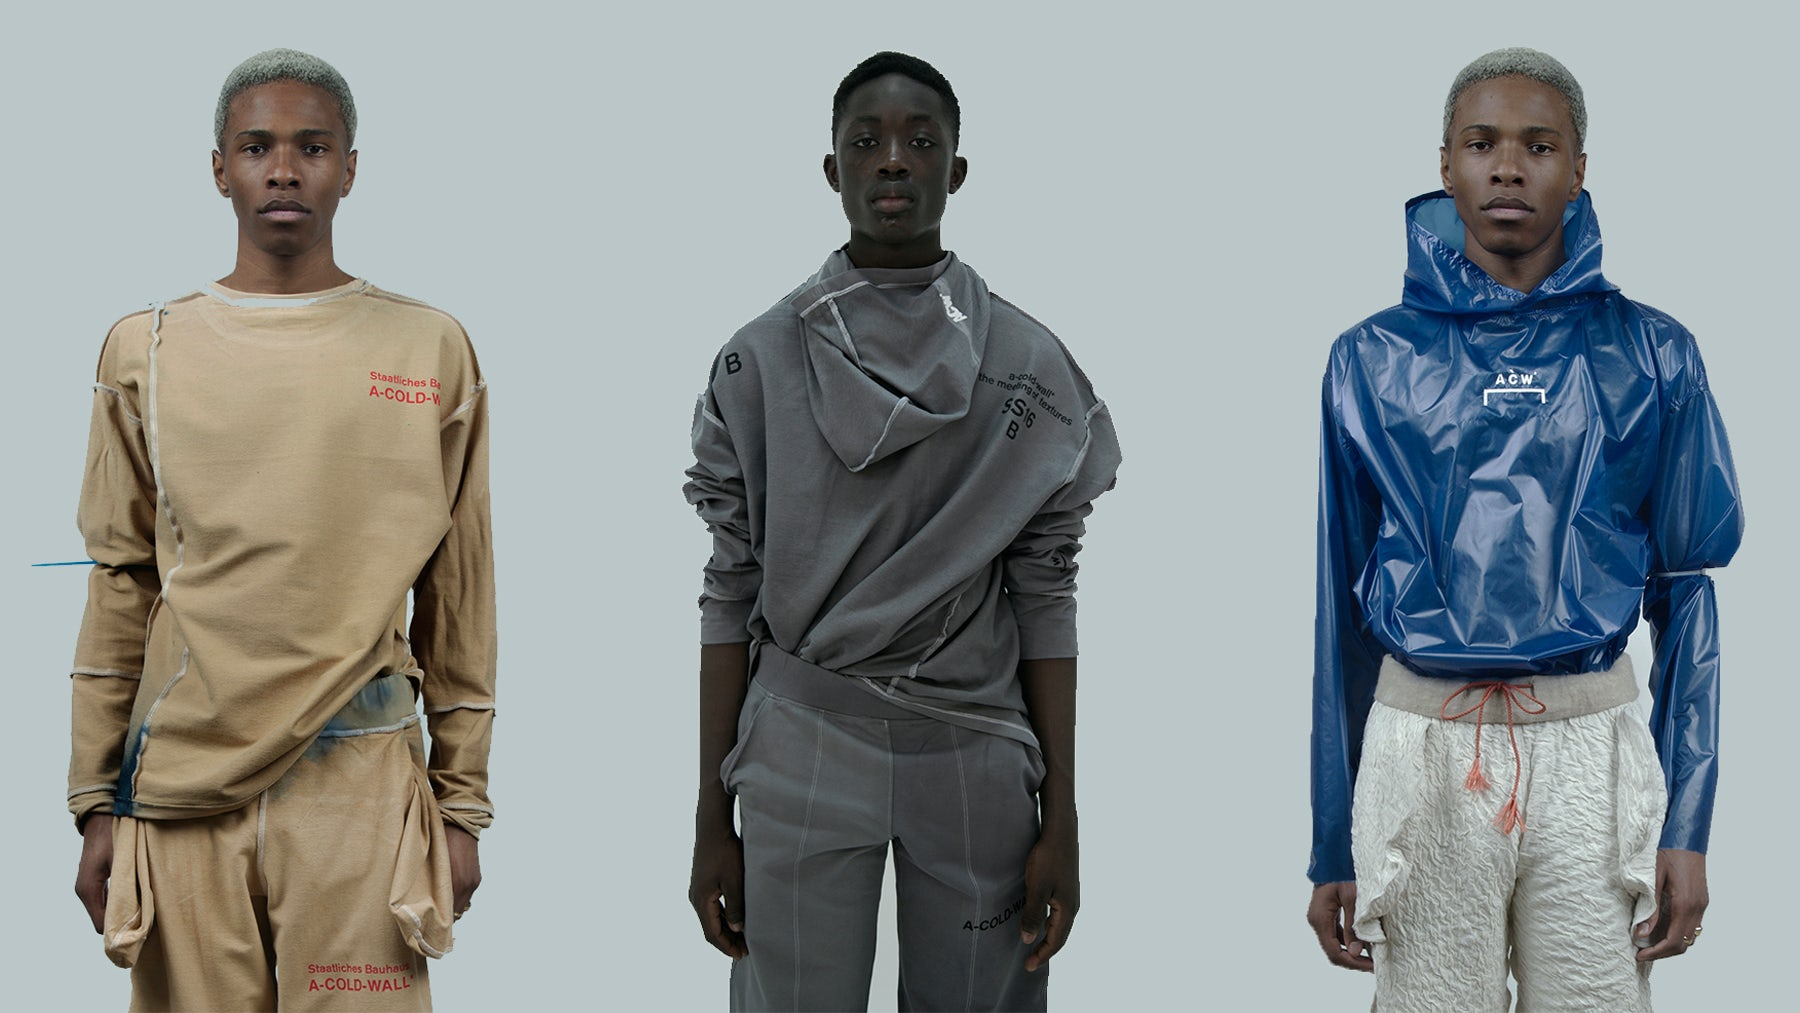 A-Cold-Wall Spring/Summer 2016 | Source: A-Cold-Wall